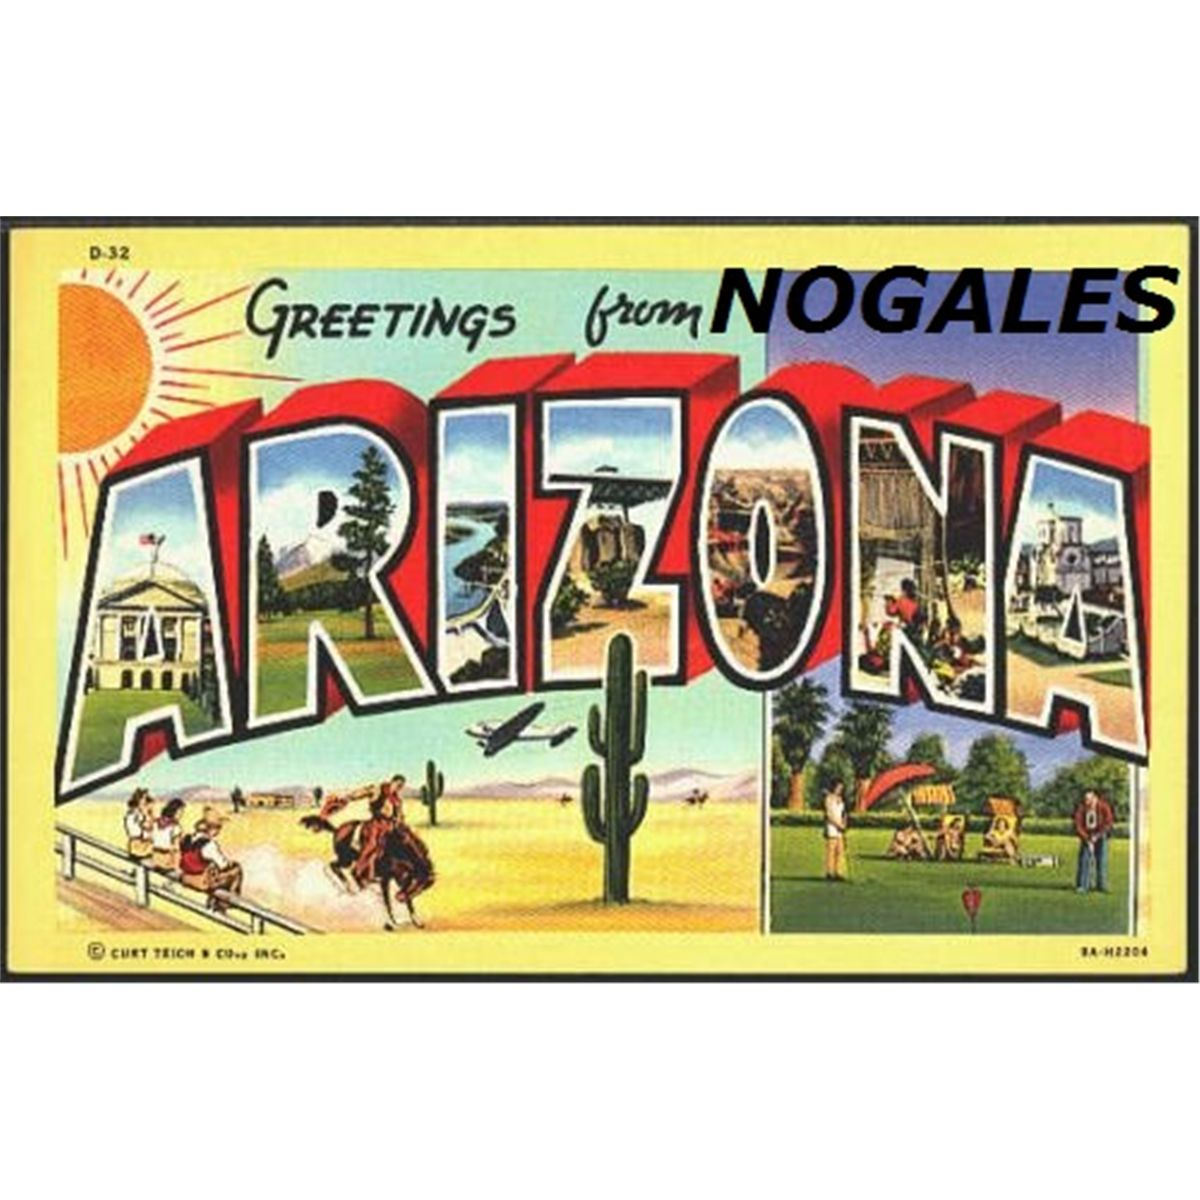 nogales arizona dating Dating in nogales, arizona, united states of america we've started 39546 conversations in nogales, arizona, united states of america, you could be next sign up & join 2897 others in nogales.